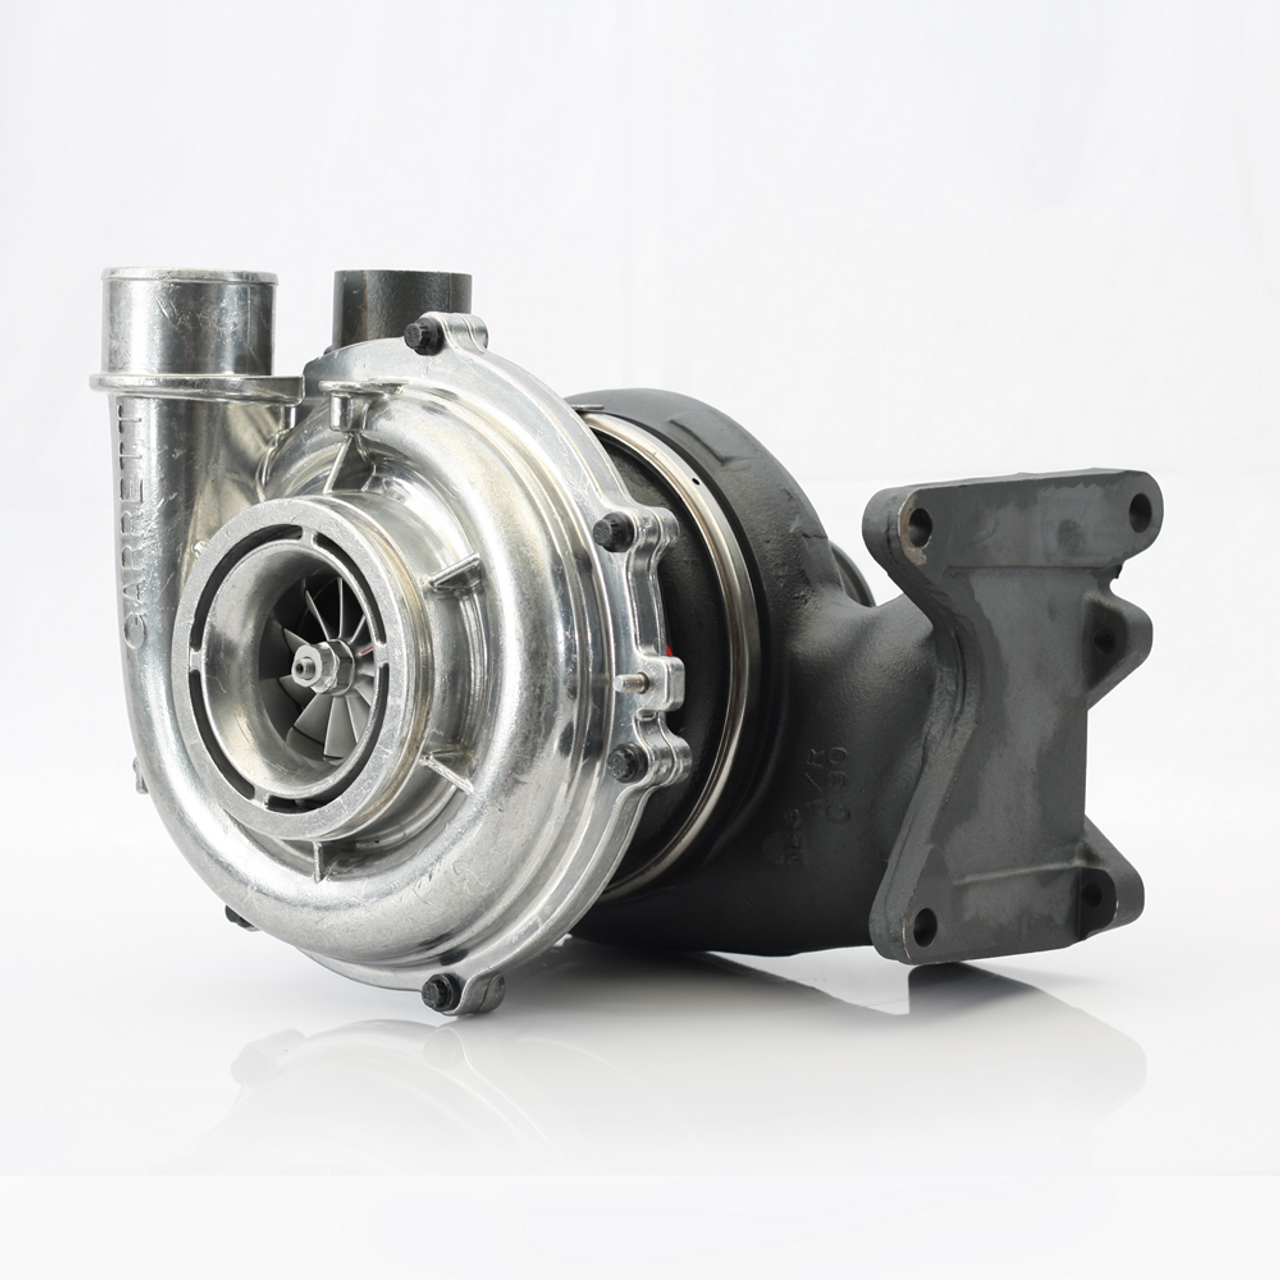 06-07 Duramax 6.6 LBZ Duramax Replacement Turbocharger